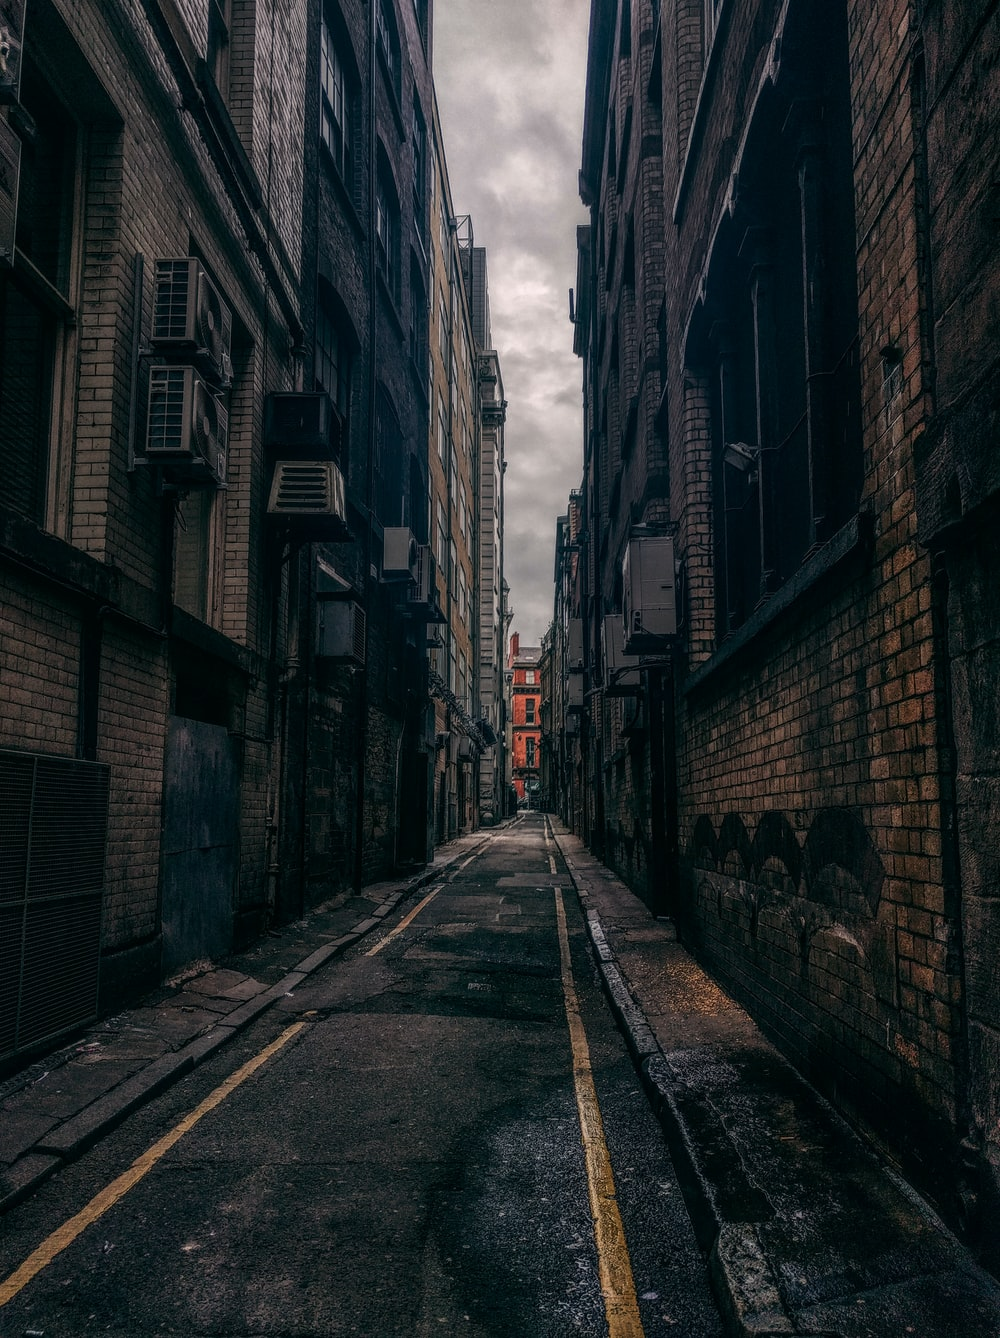 Liverpool City Pictures Download Free Images On Unsplash